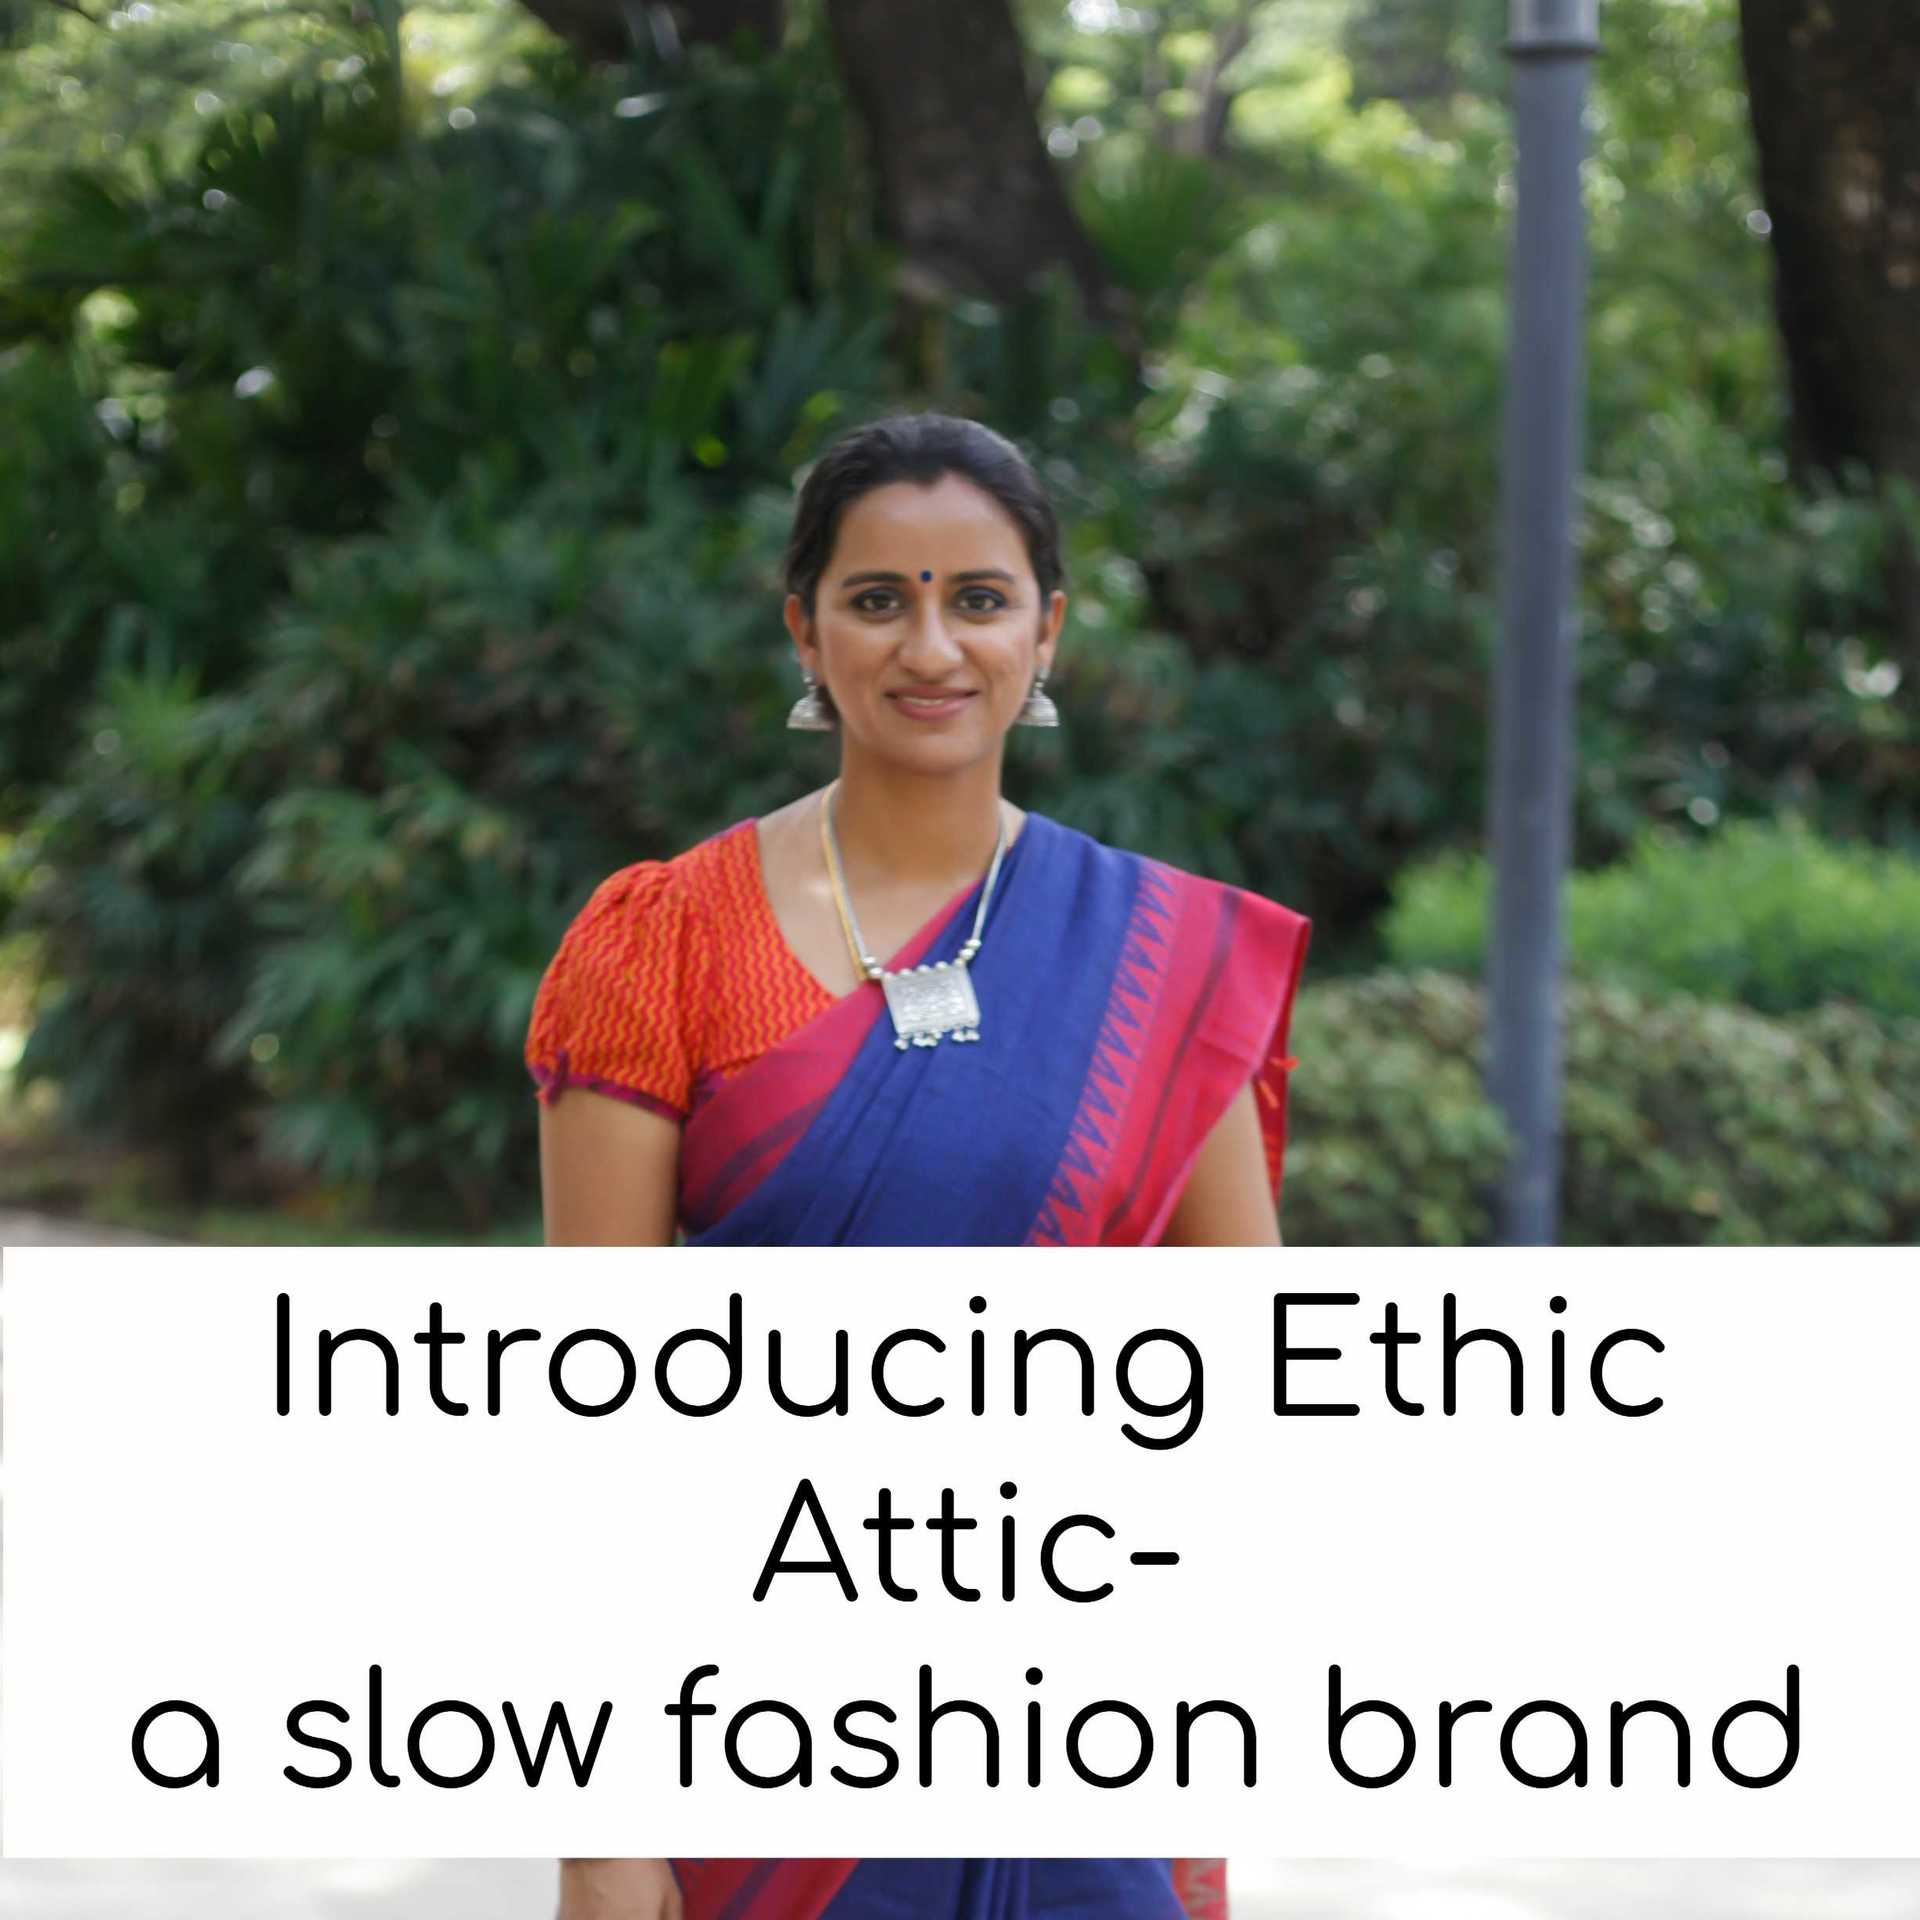 Featuring Ethic Attic- An Ethical Fashion Brand in India  image